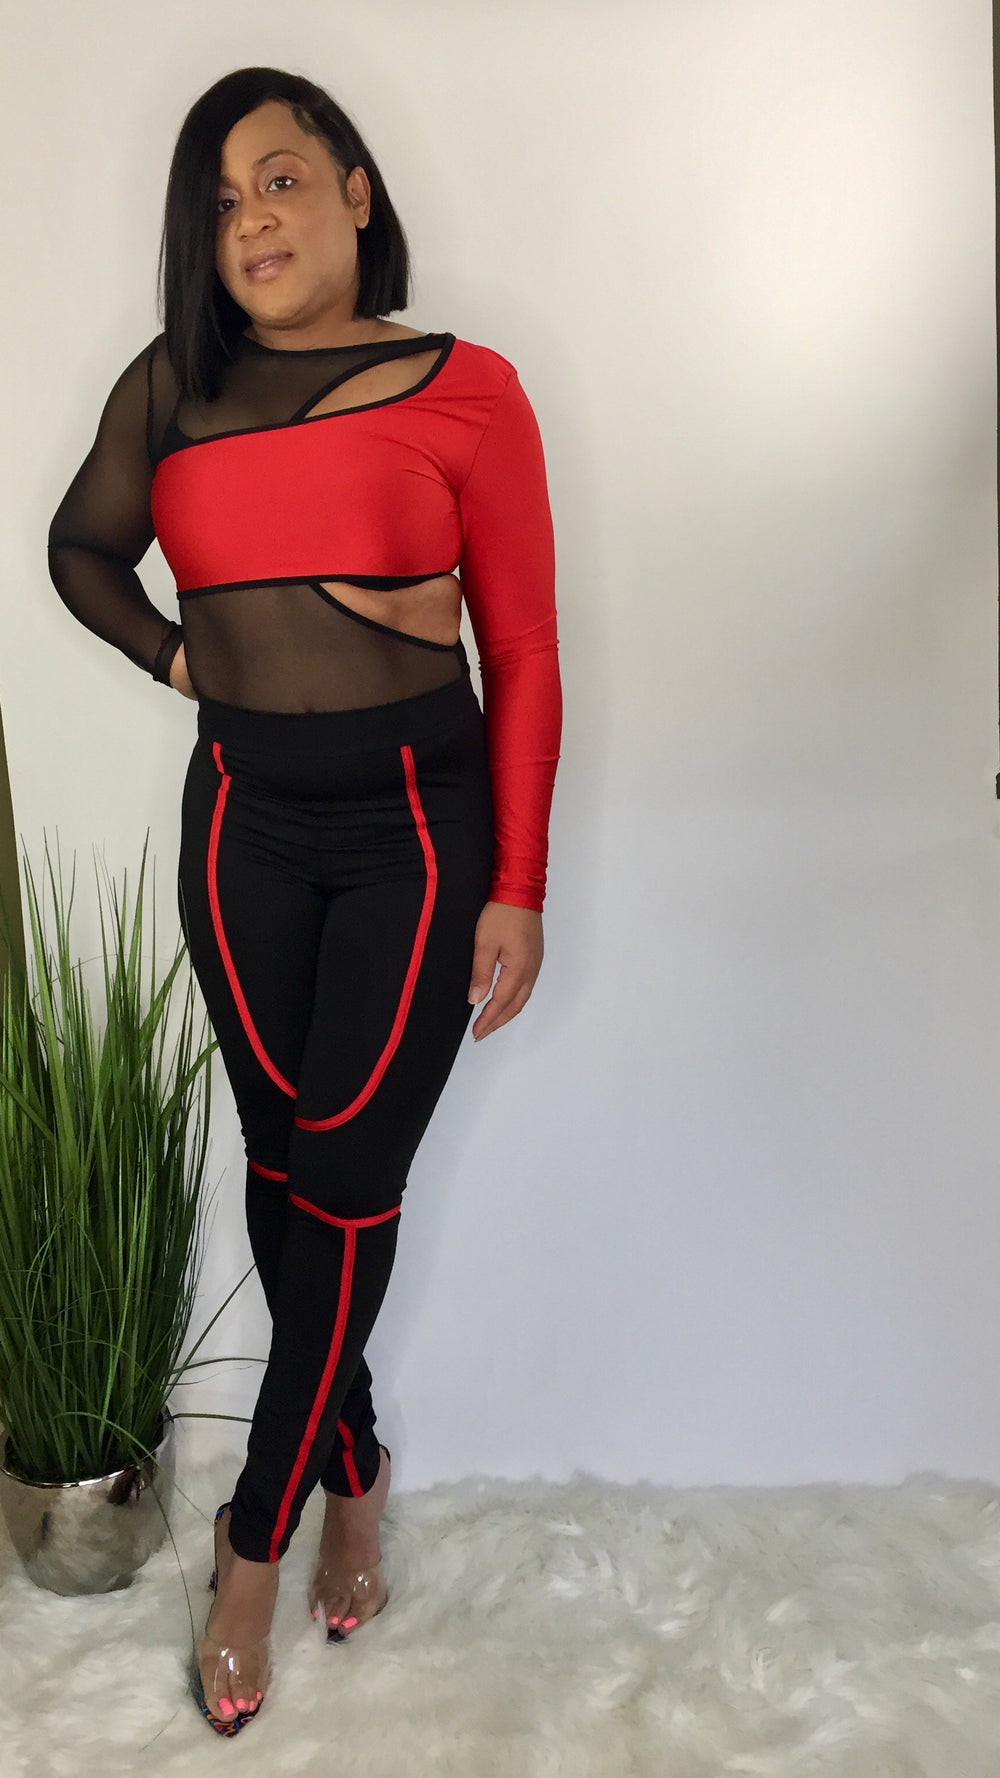 Reckless | Body suit and tight matching set